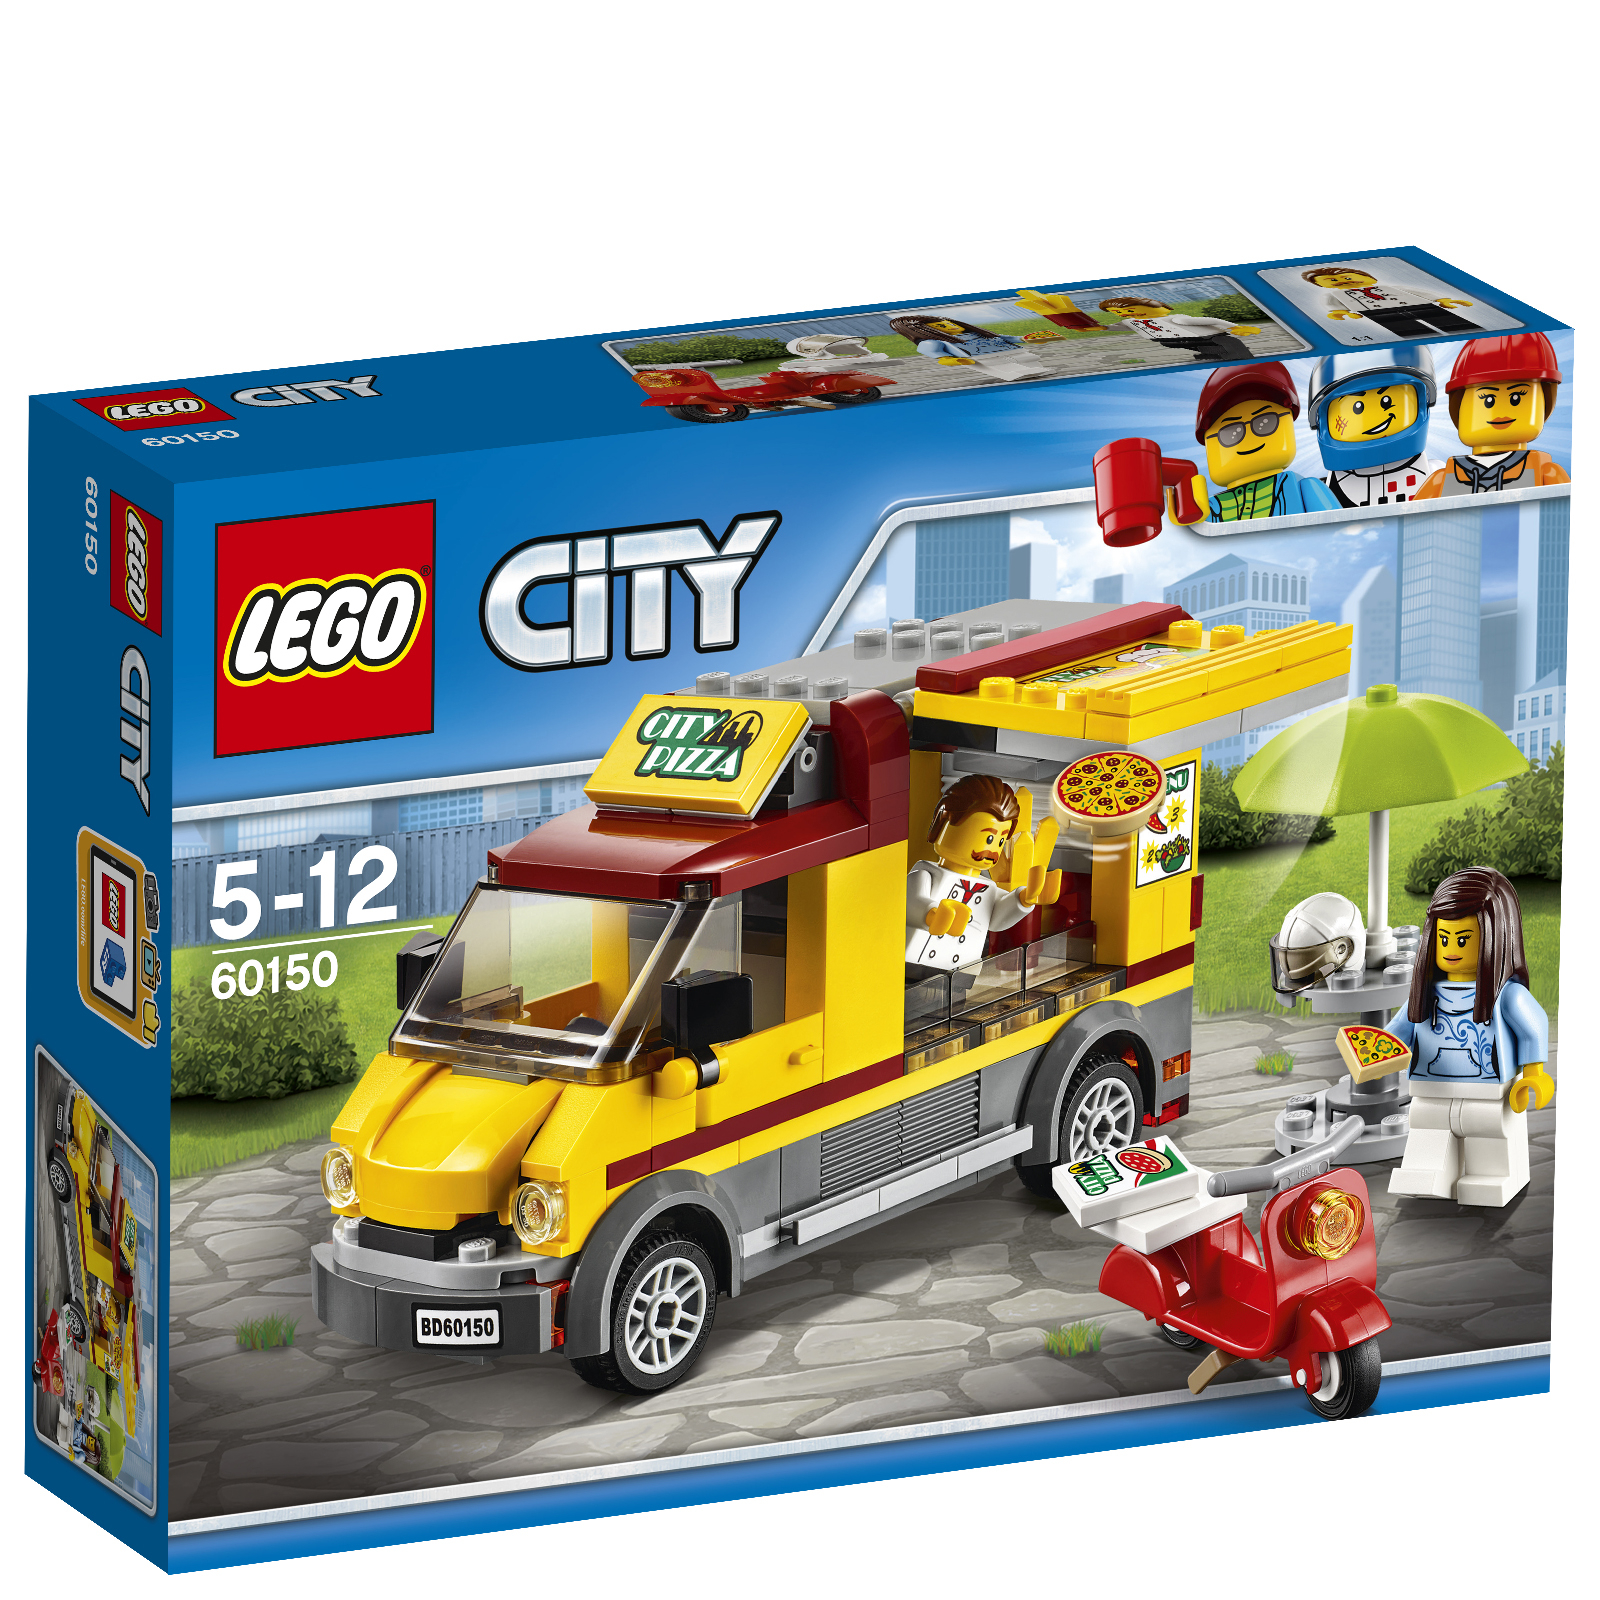 LEGO City: Le camion pizza (60150)